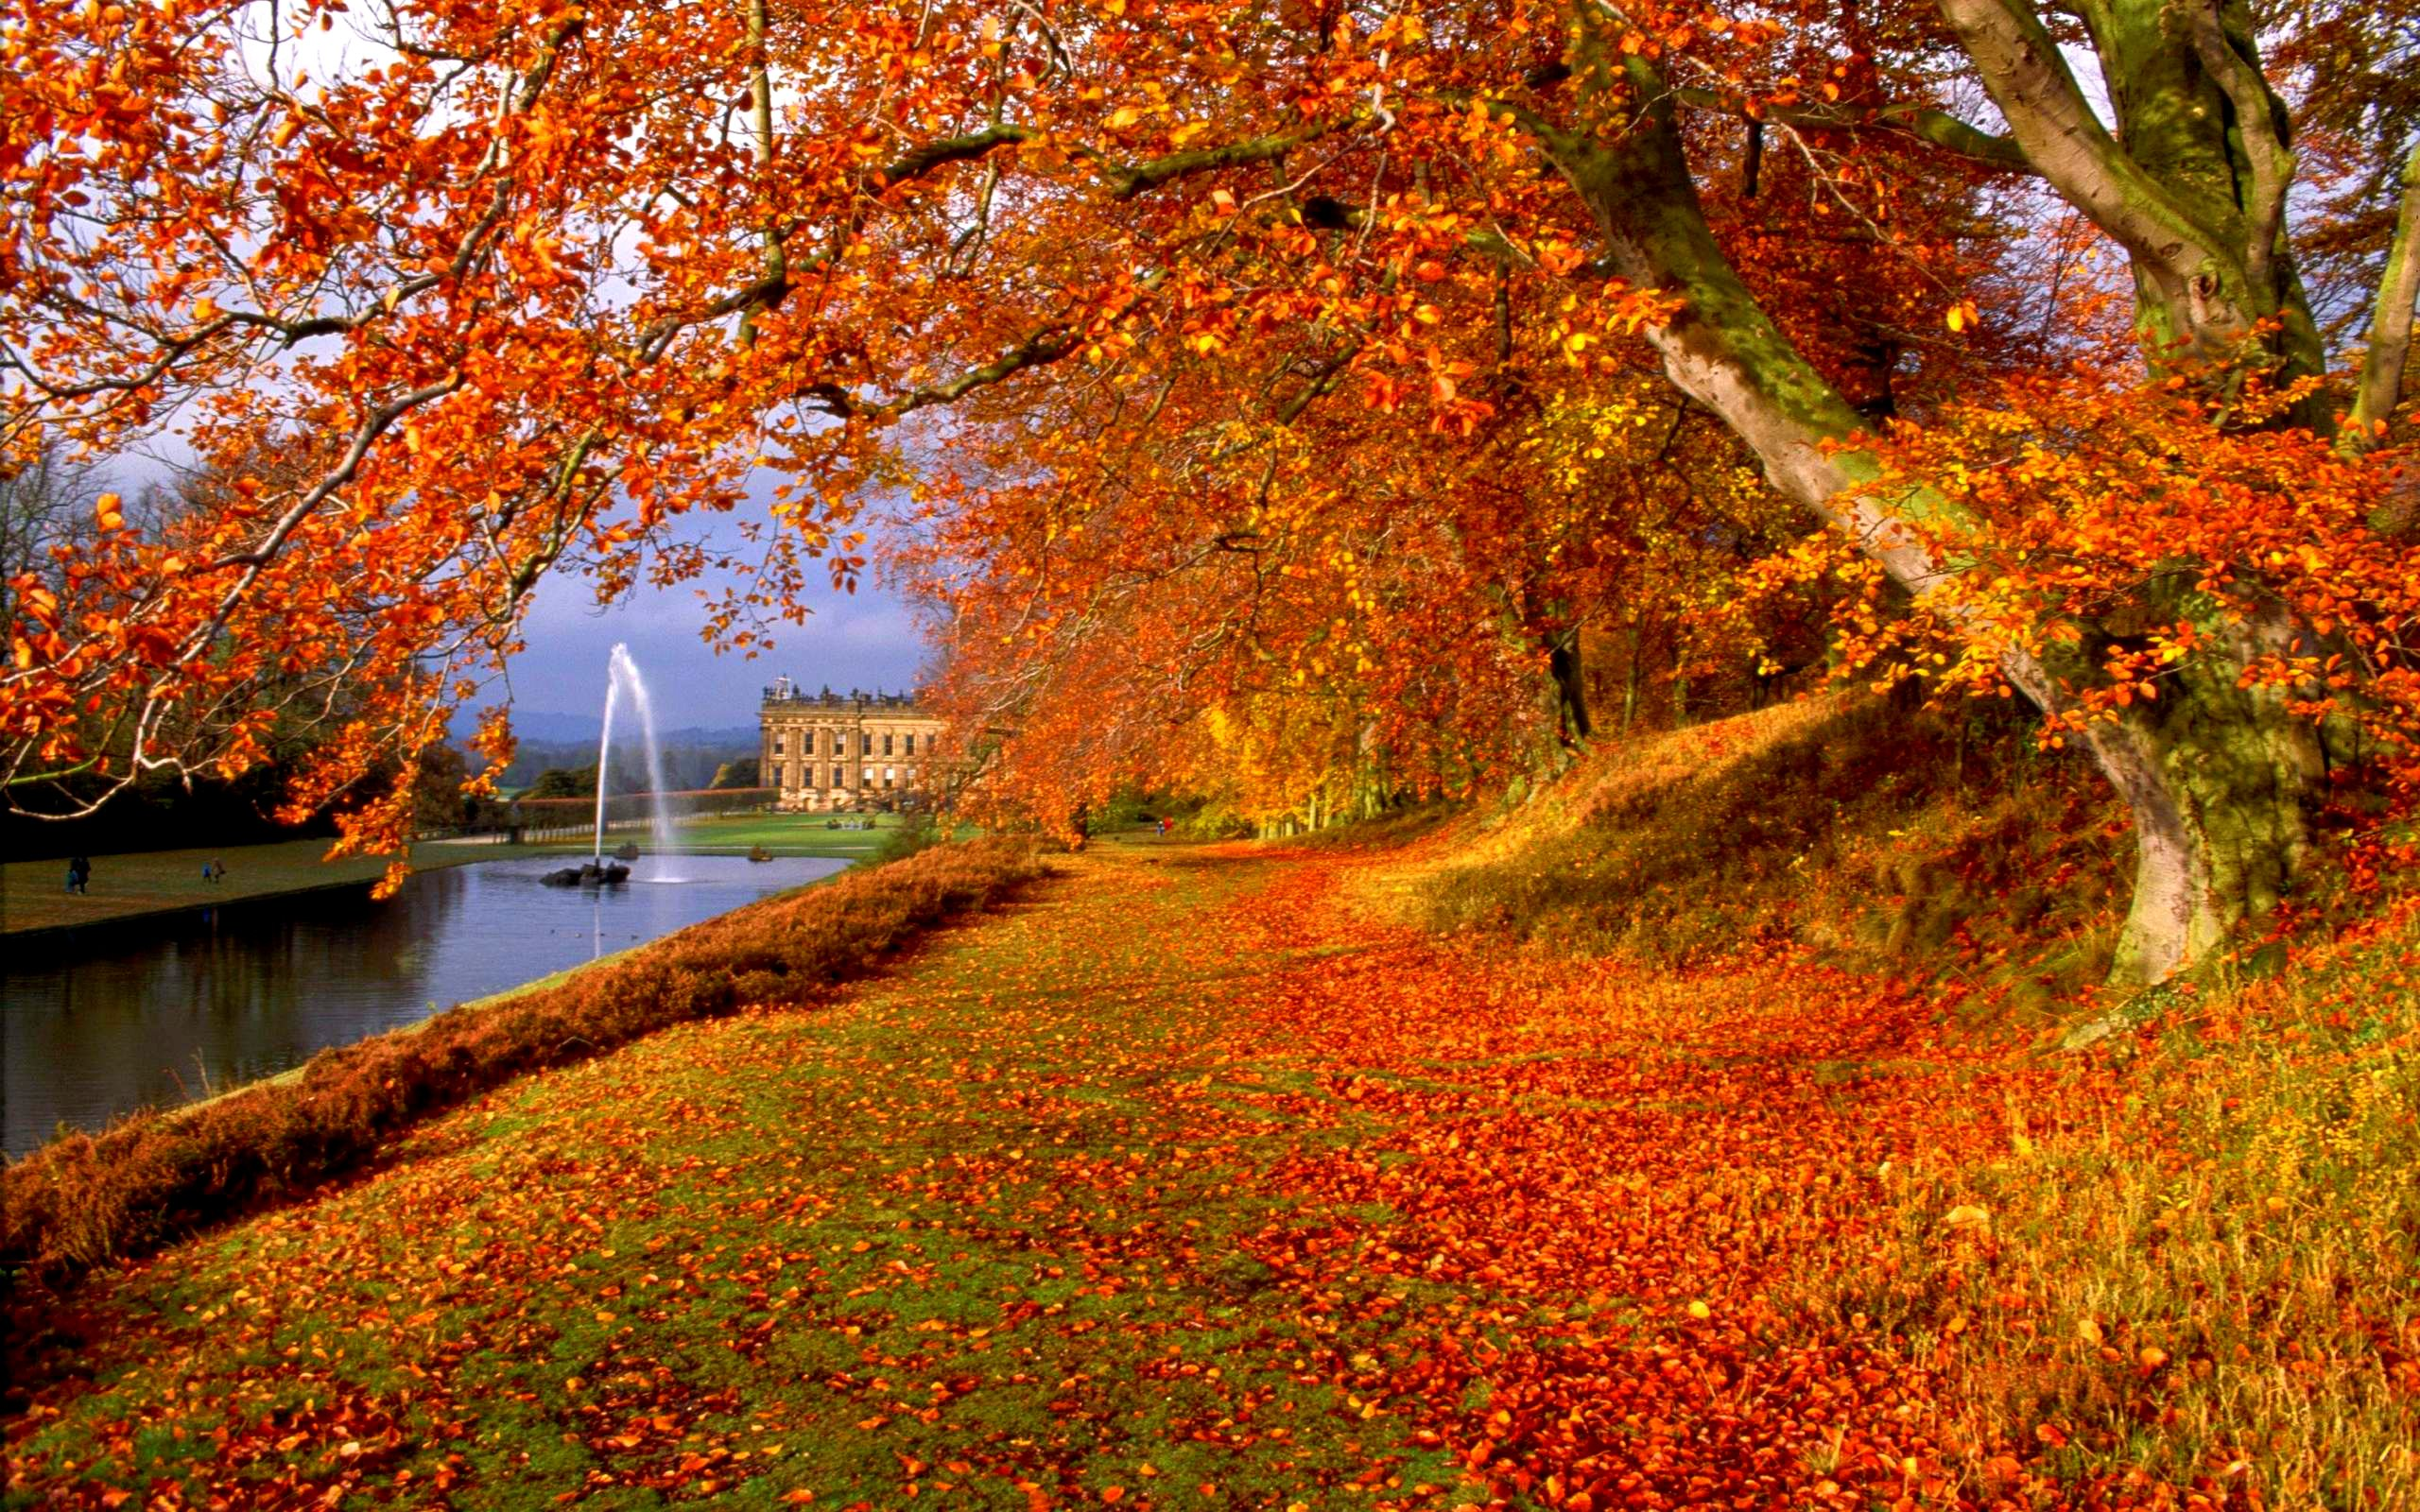 autumn Wallpaper Background 38304 2560x1600